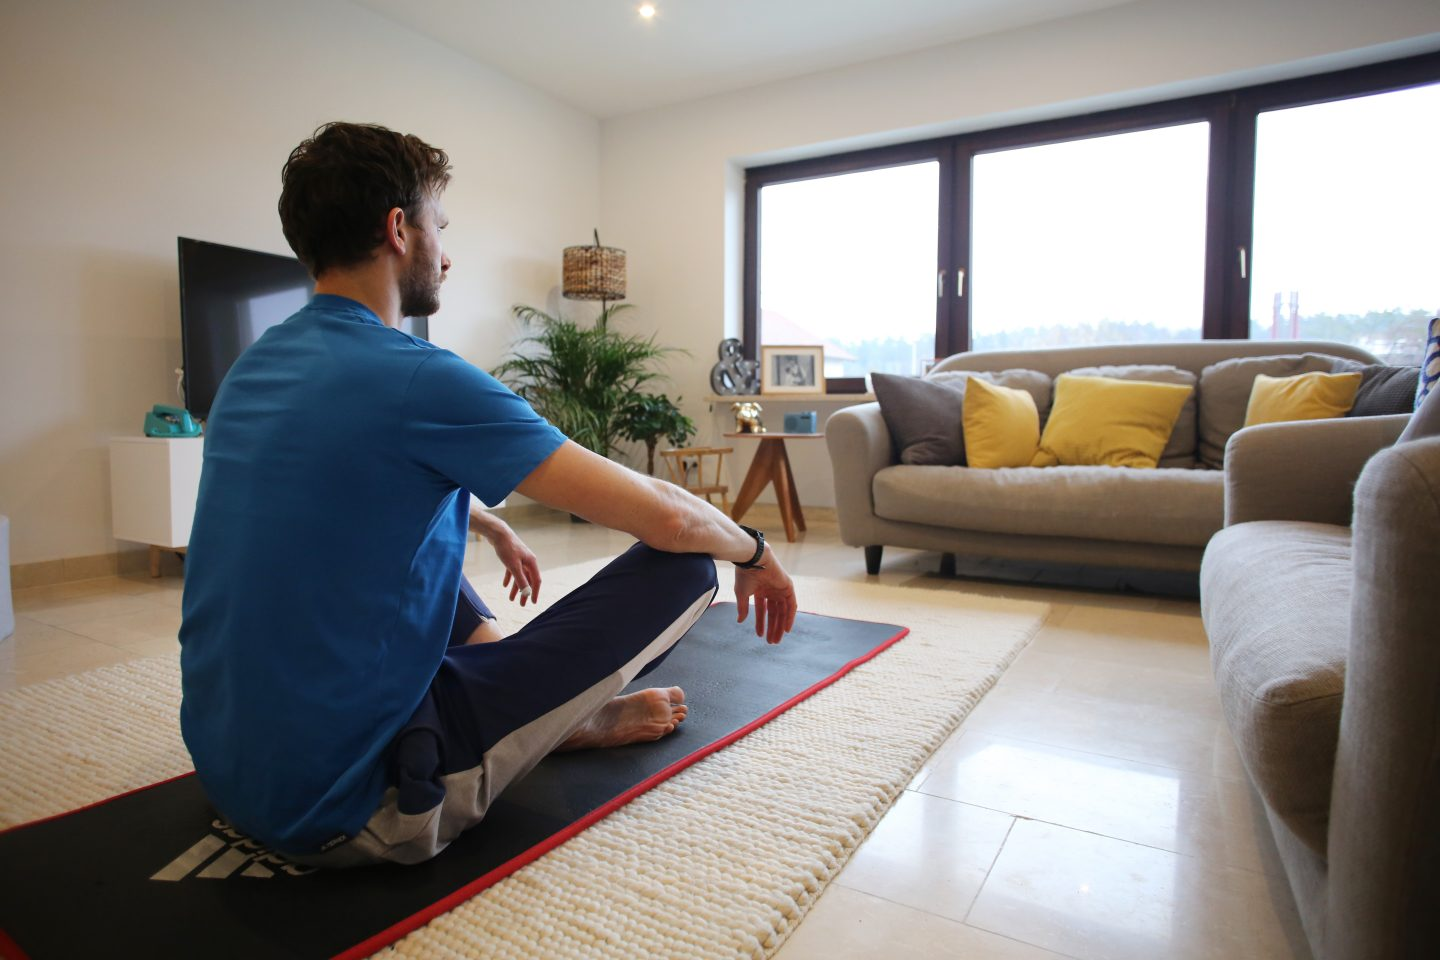 A guy meditating on his yoga mat at home. relaxing, mind training, sleep, meditation, GamePlan A